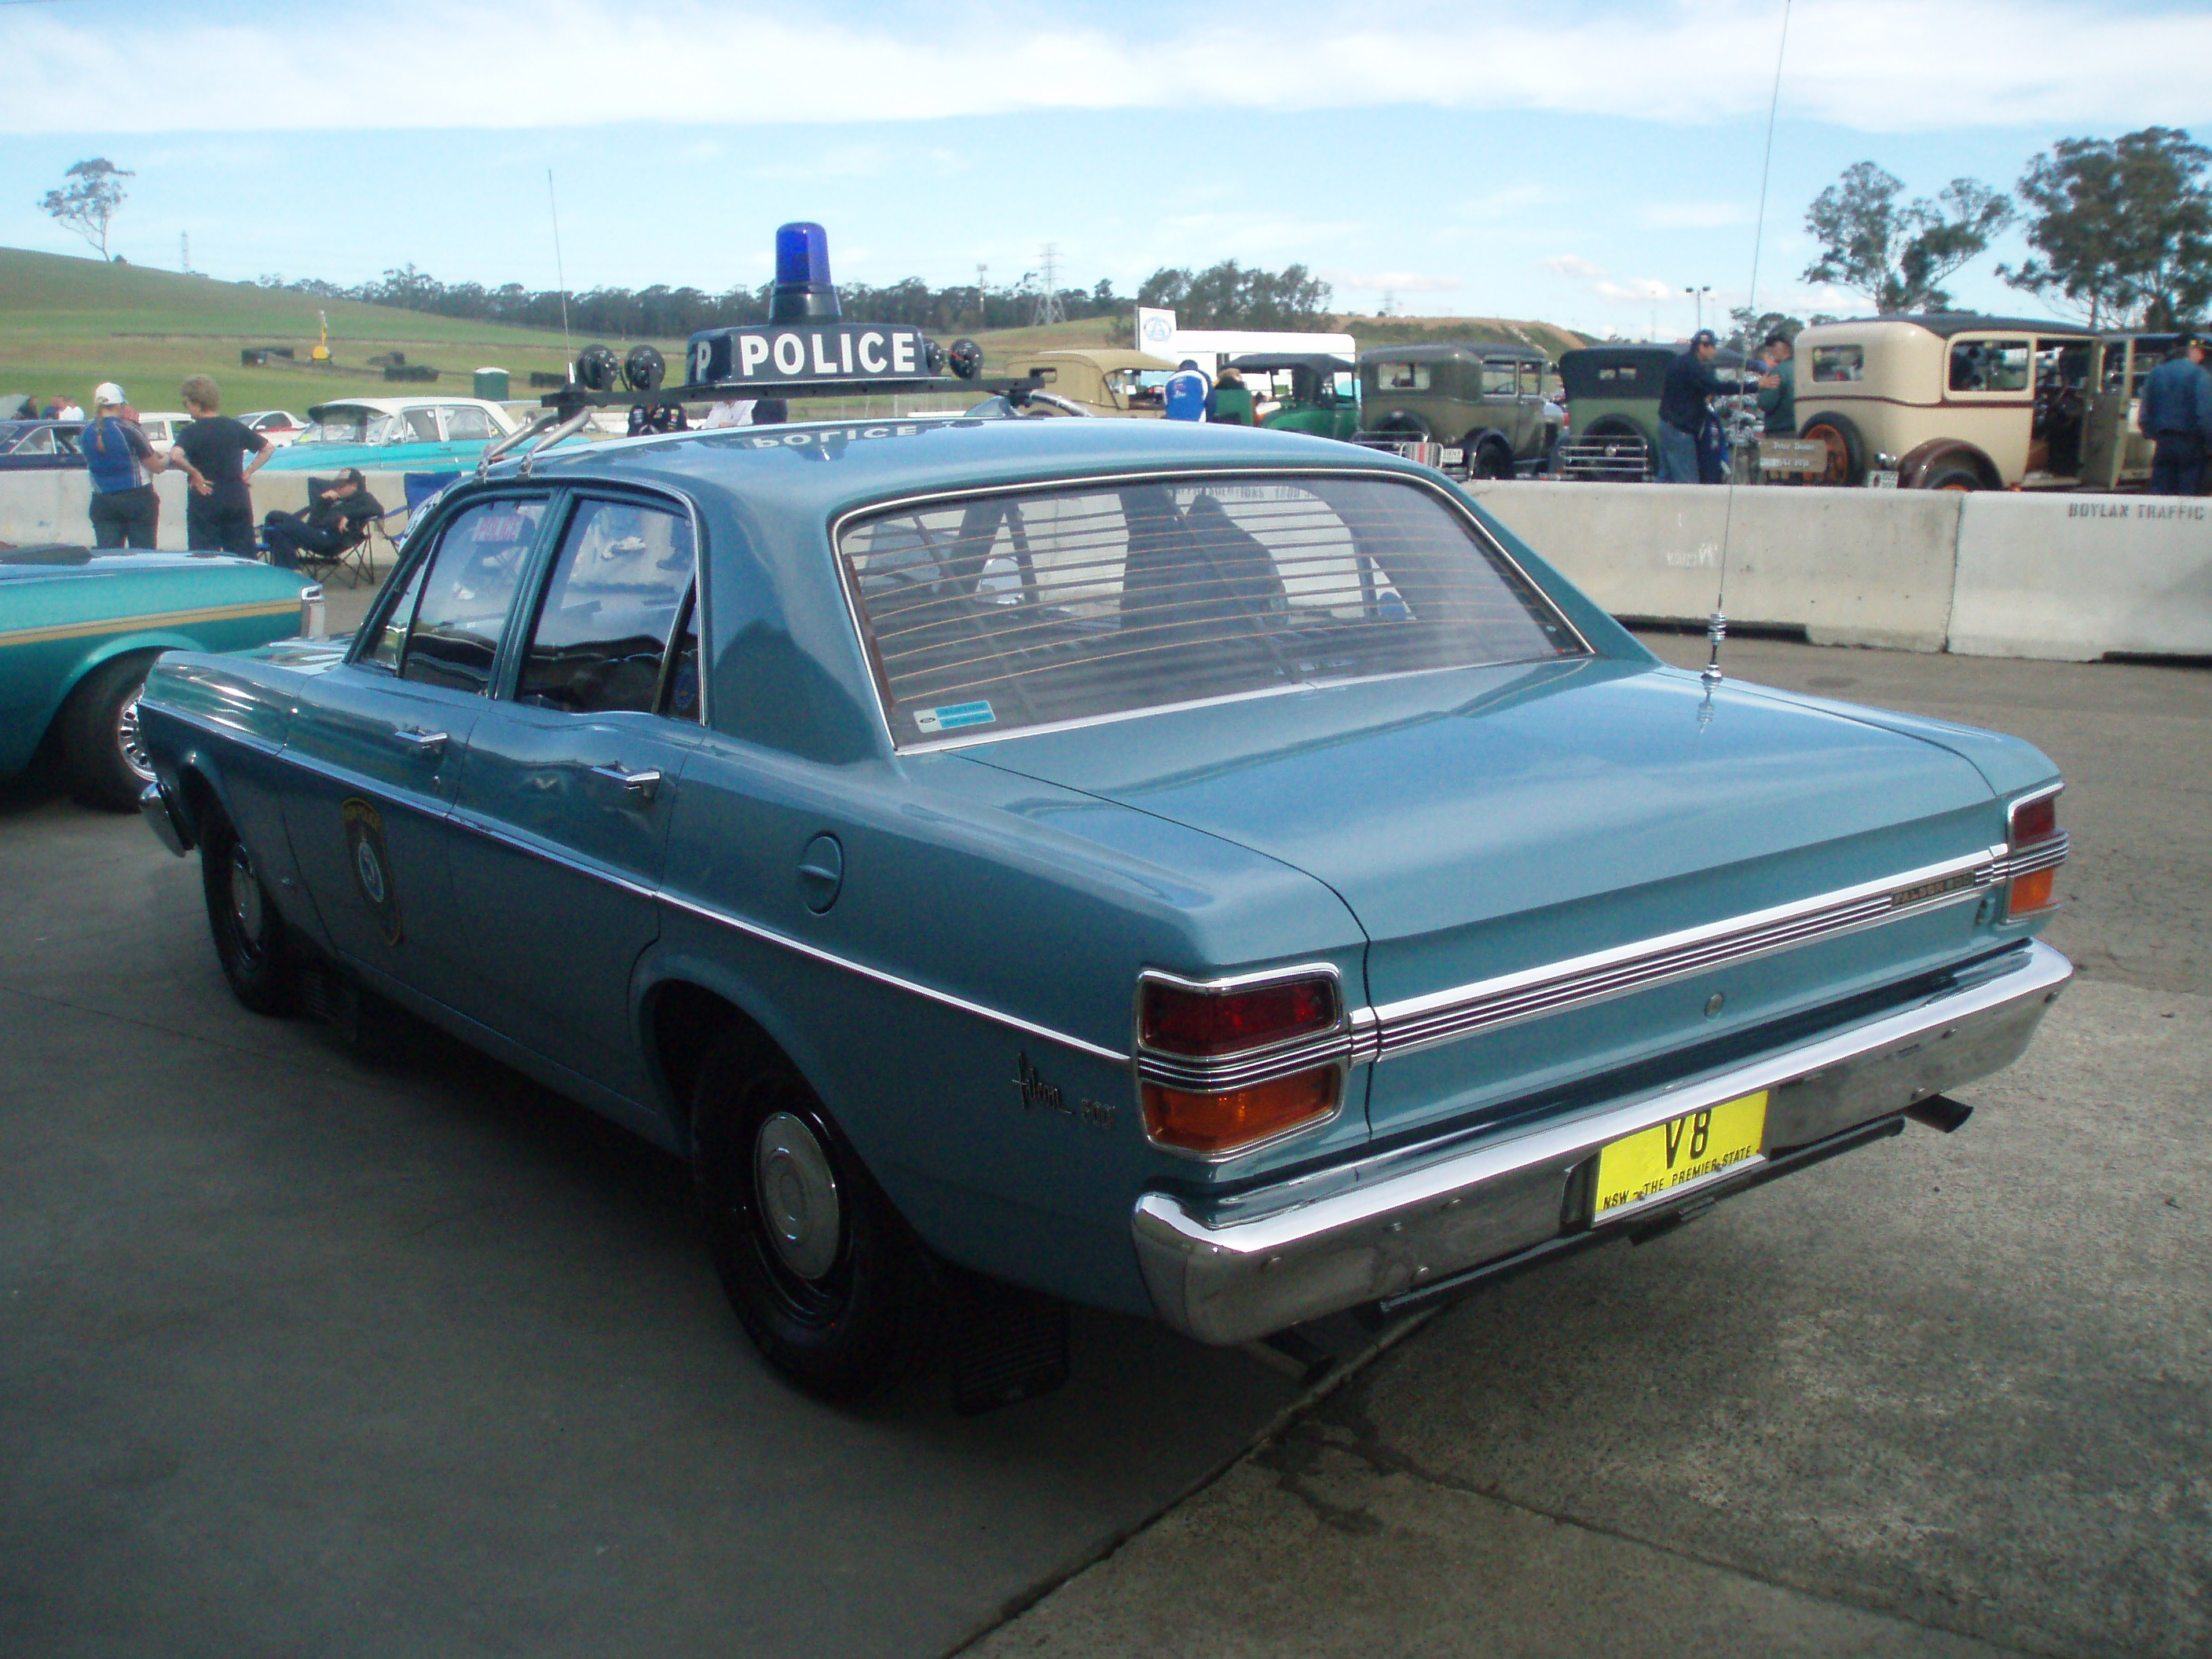 Ex Police Car Auctions >> File:1971 Ford XY Falcon 500 - NSW Police (4973153852).jpg ...